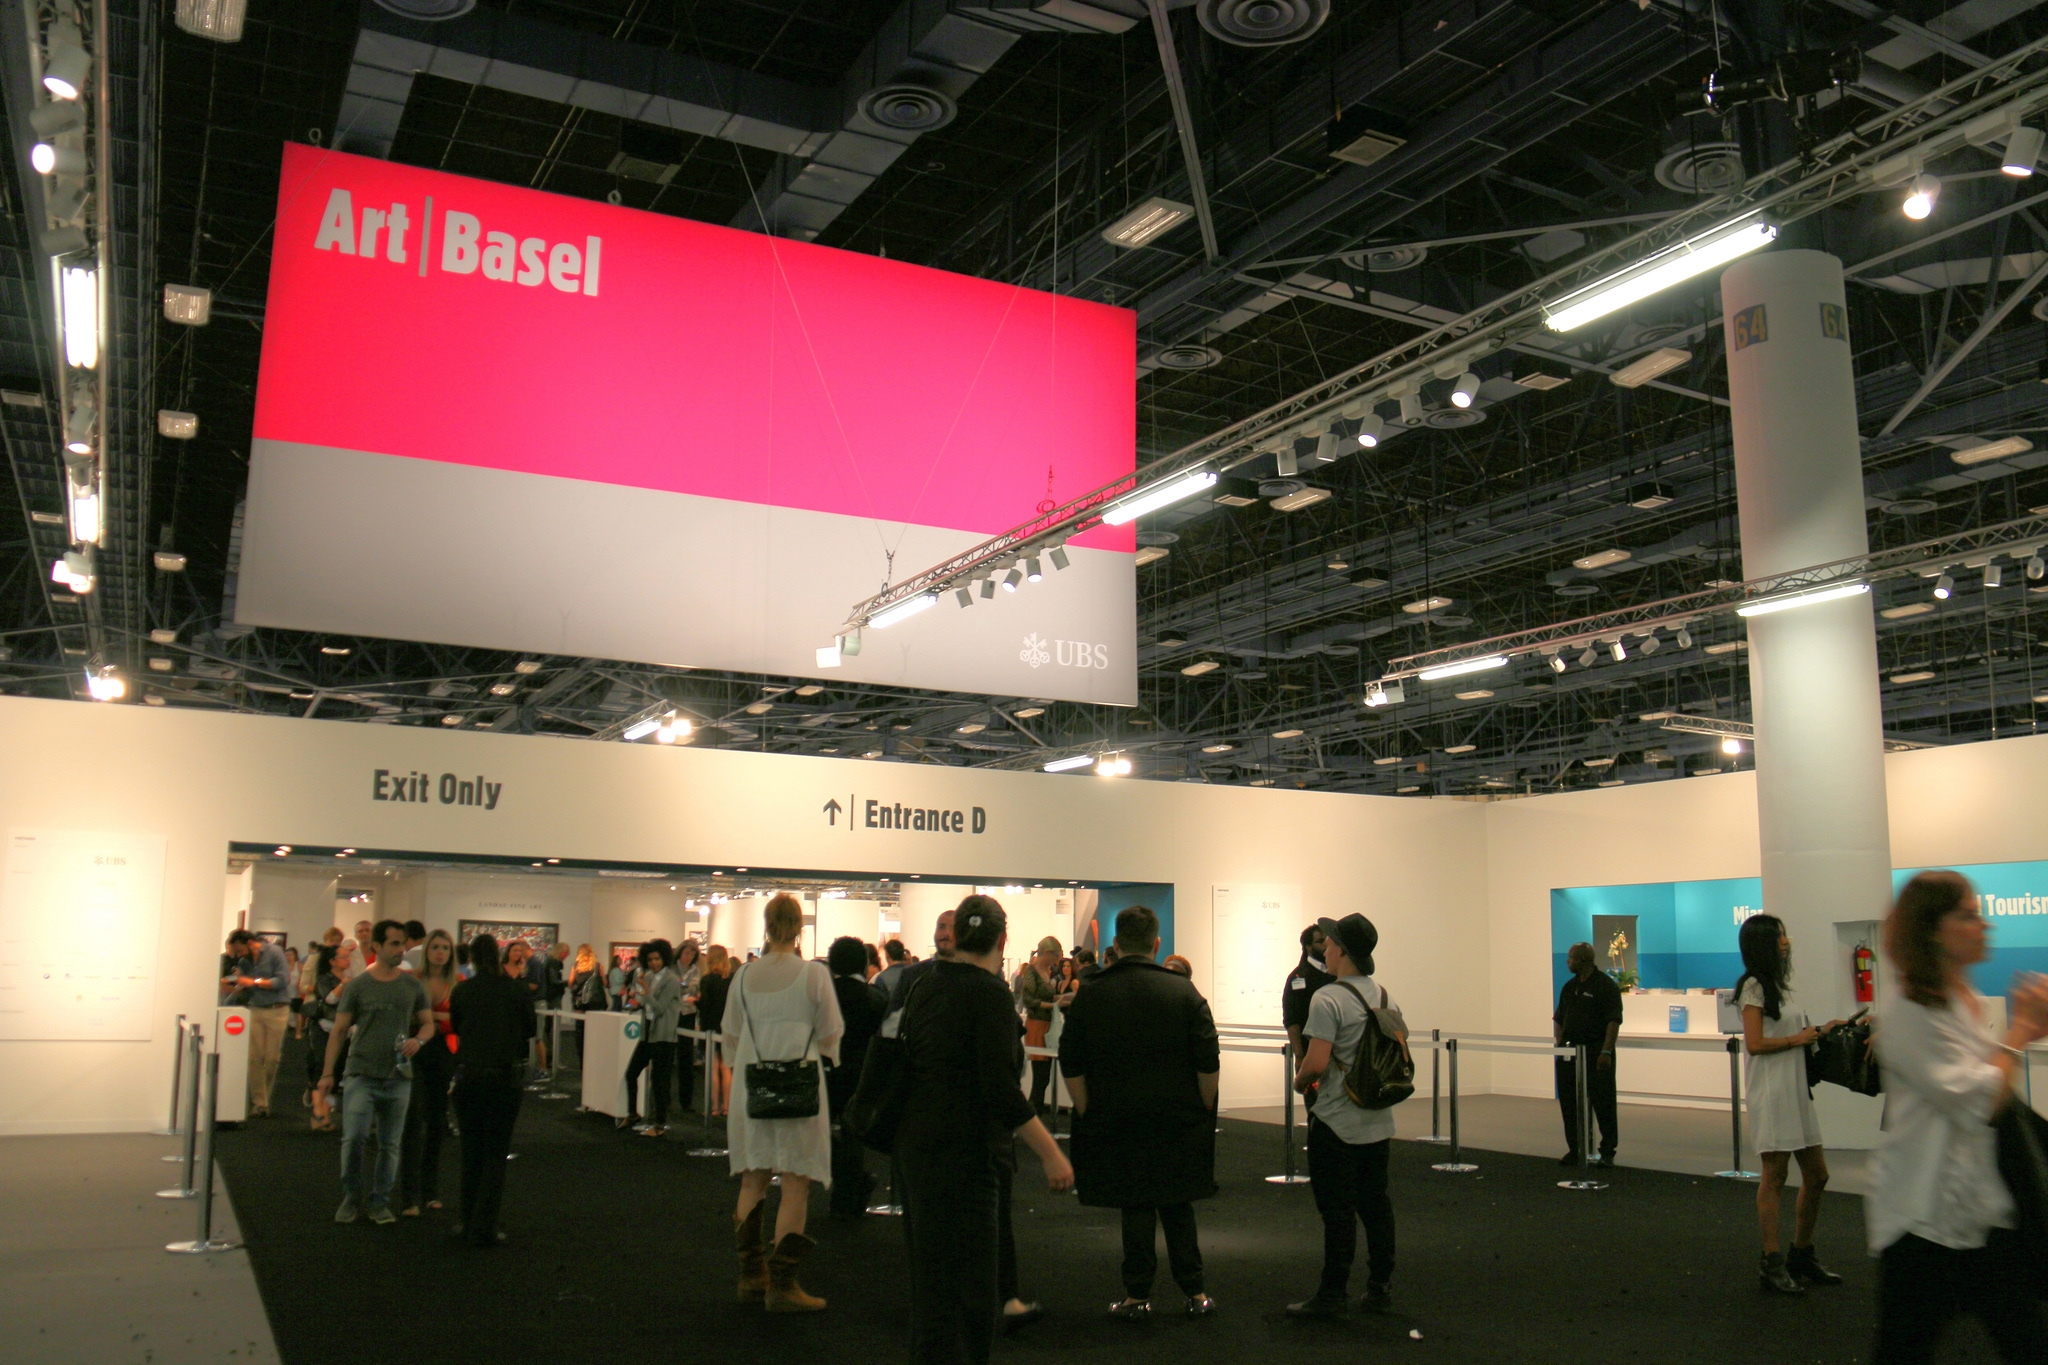 Art Basel Miami Beach announces its gallery lineup for 2017